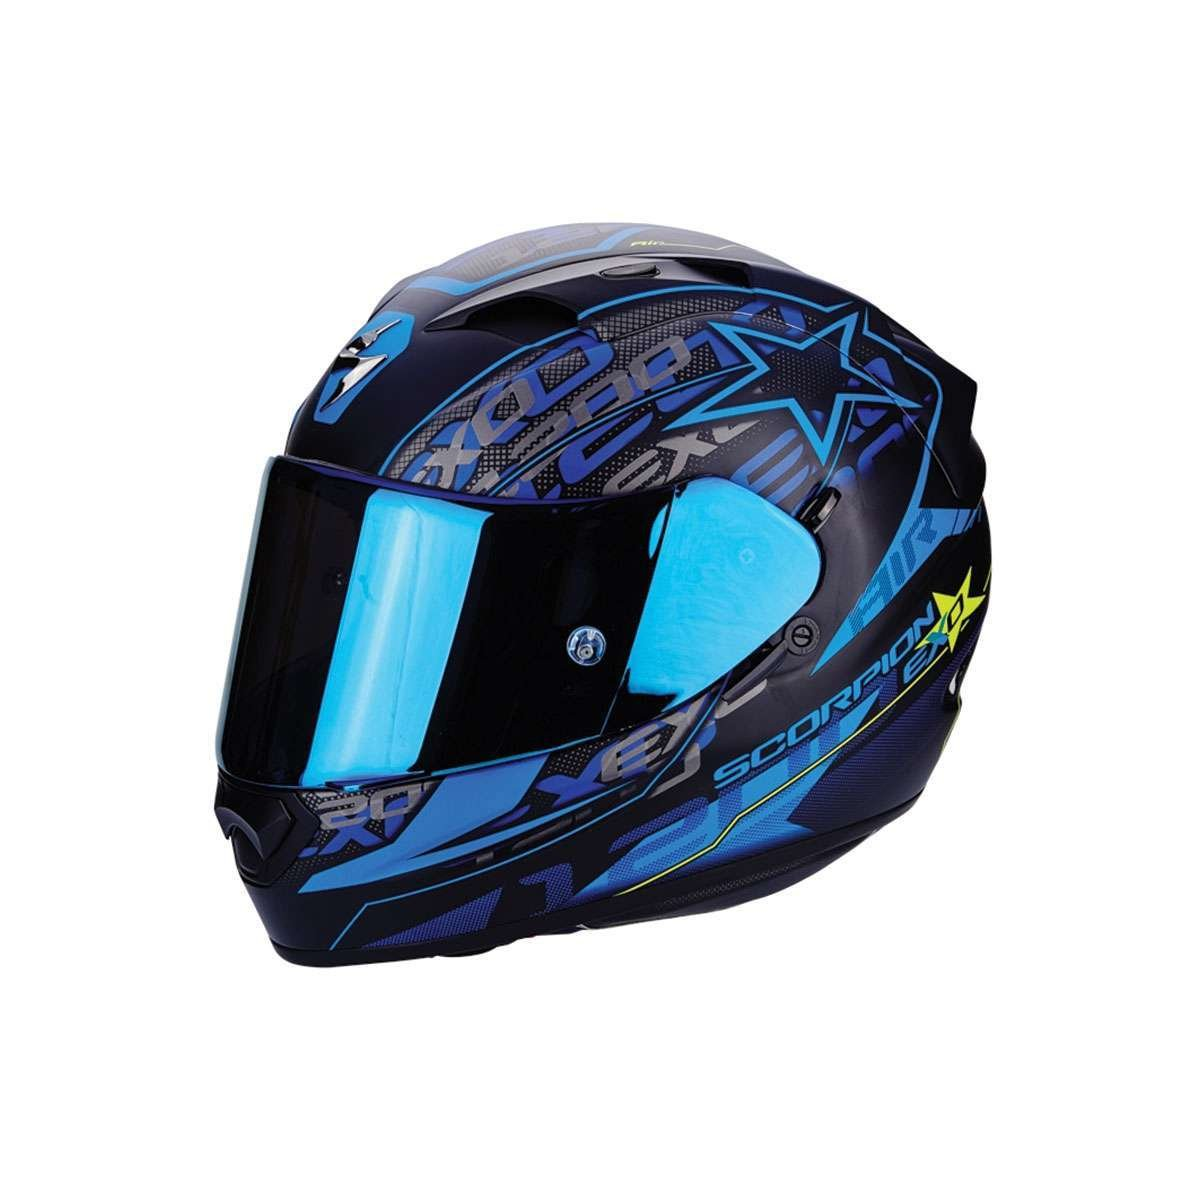 Scorpion EXO-1200 Air Solis - Casco para moto, Matt Black/Blue,